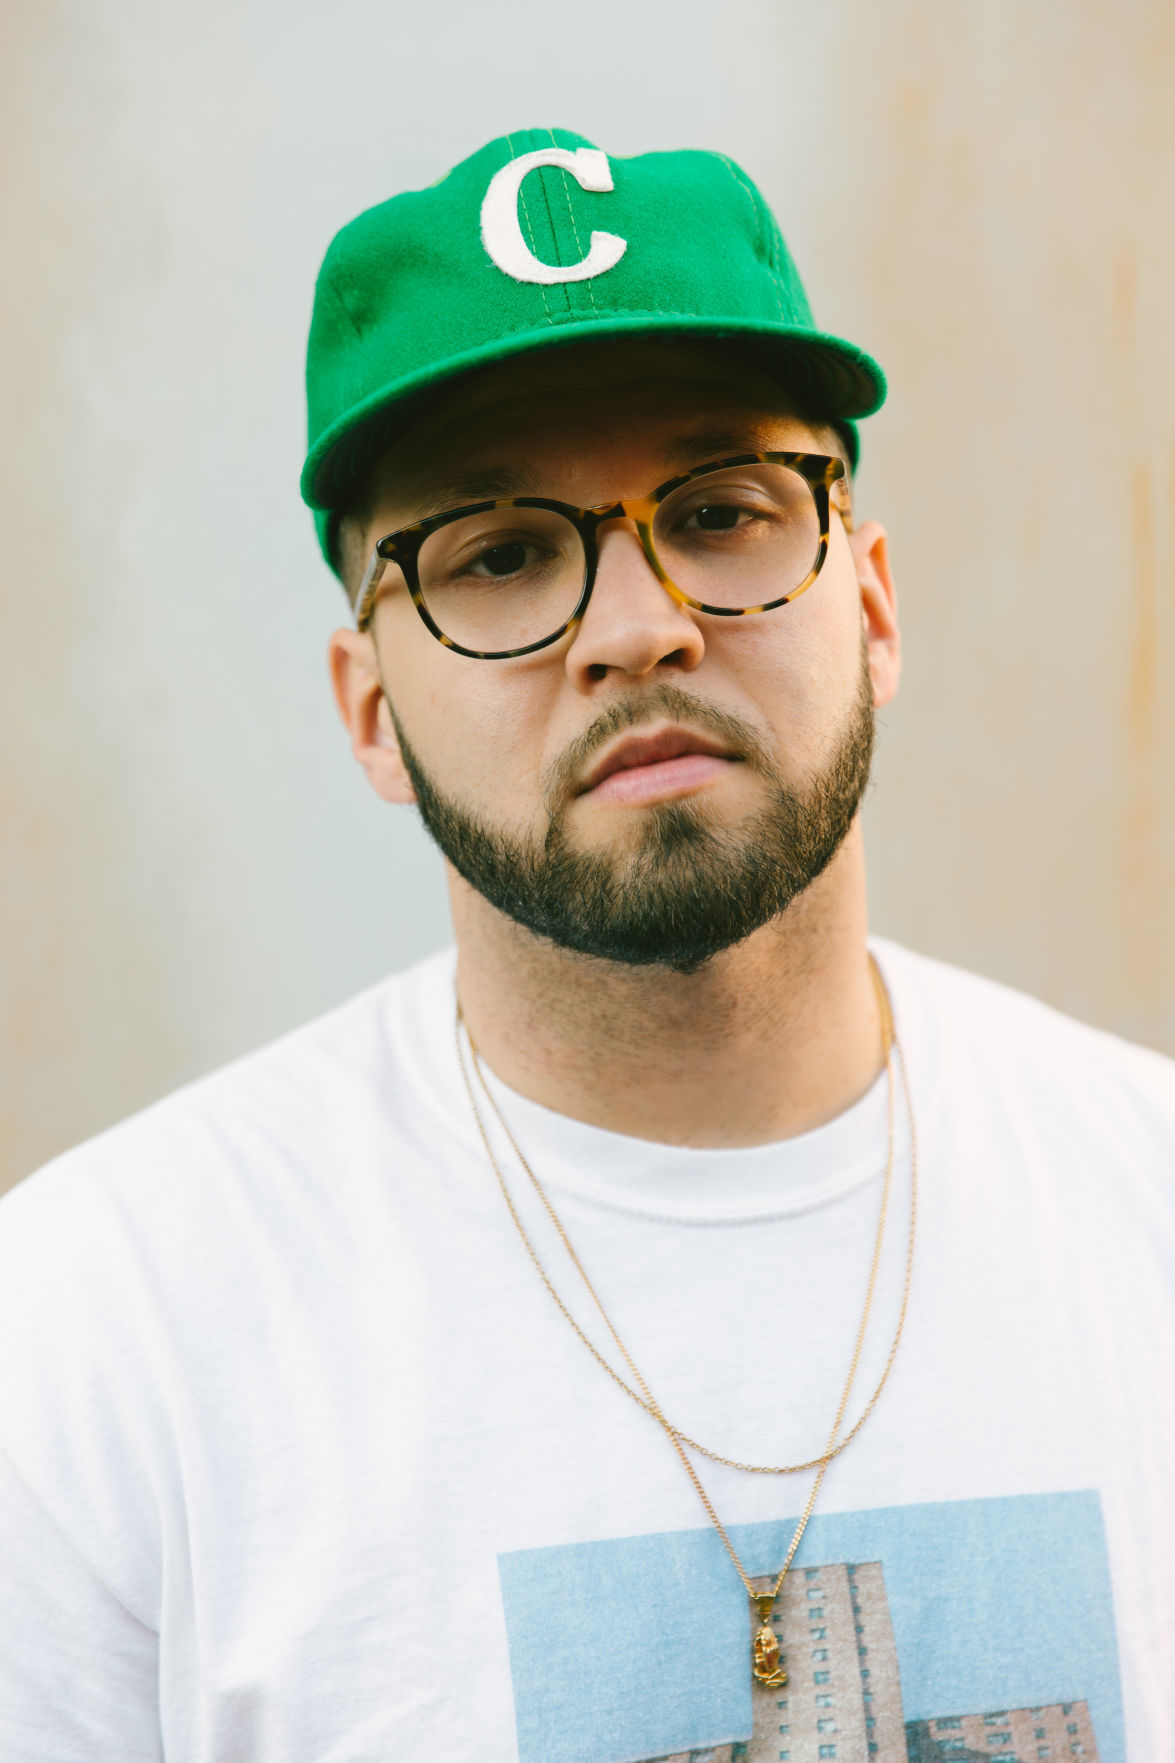 Winter Jam - Andy Mineo